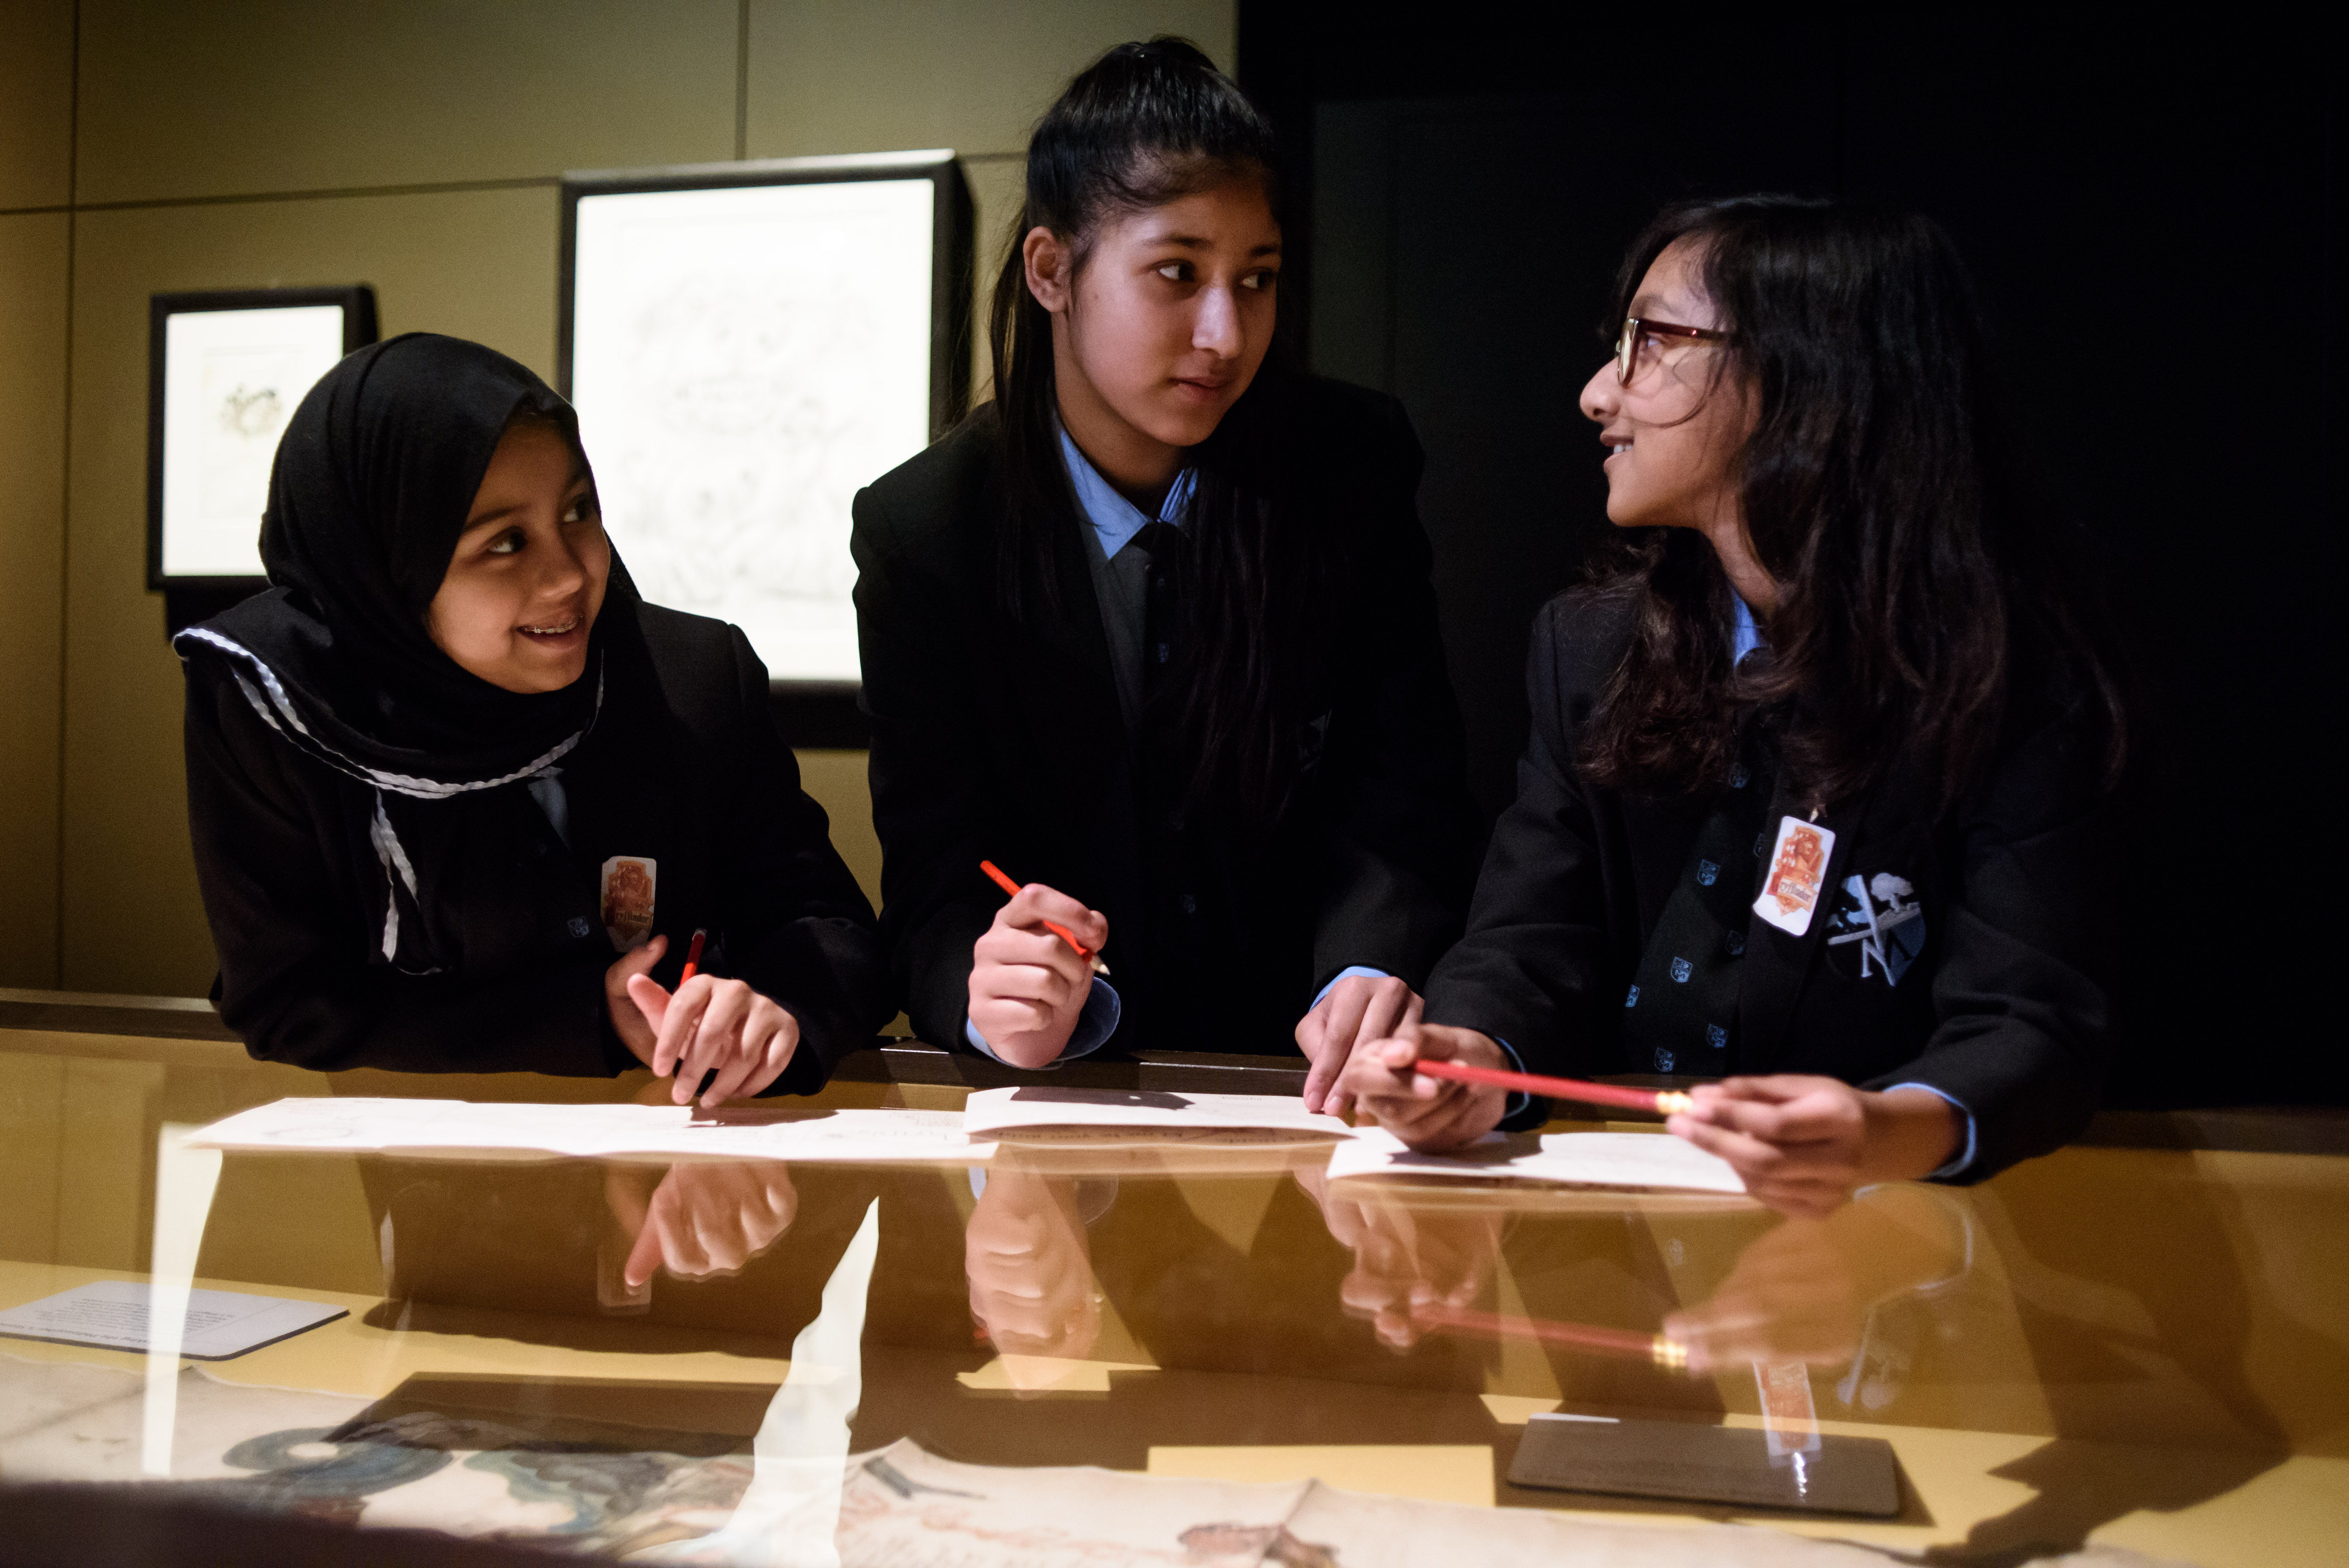 Three school students discuss their task in an exhibition gallery